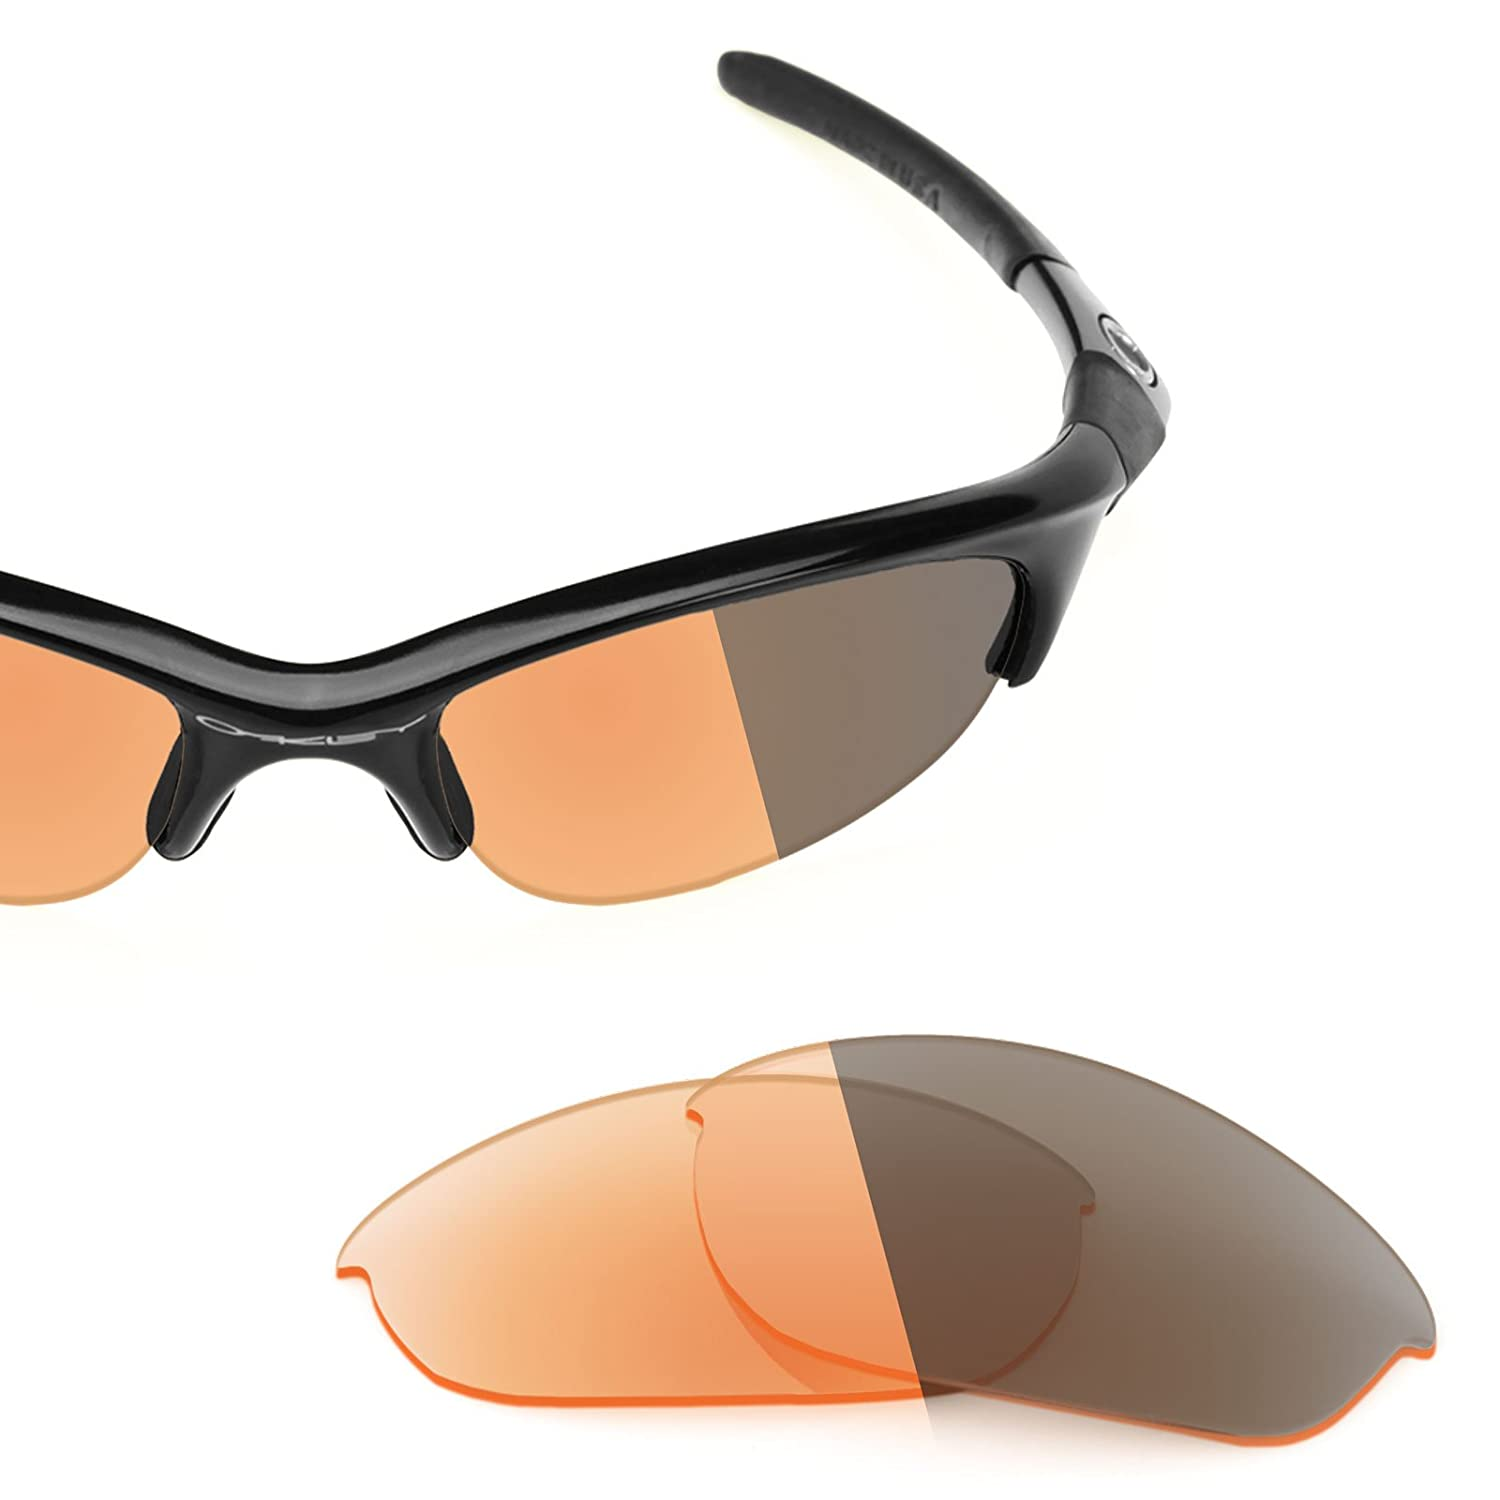 b0beee6ba0d25 Revant Replacement Lenses for Oakley Half Jacket (Asian Fit ...